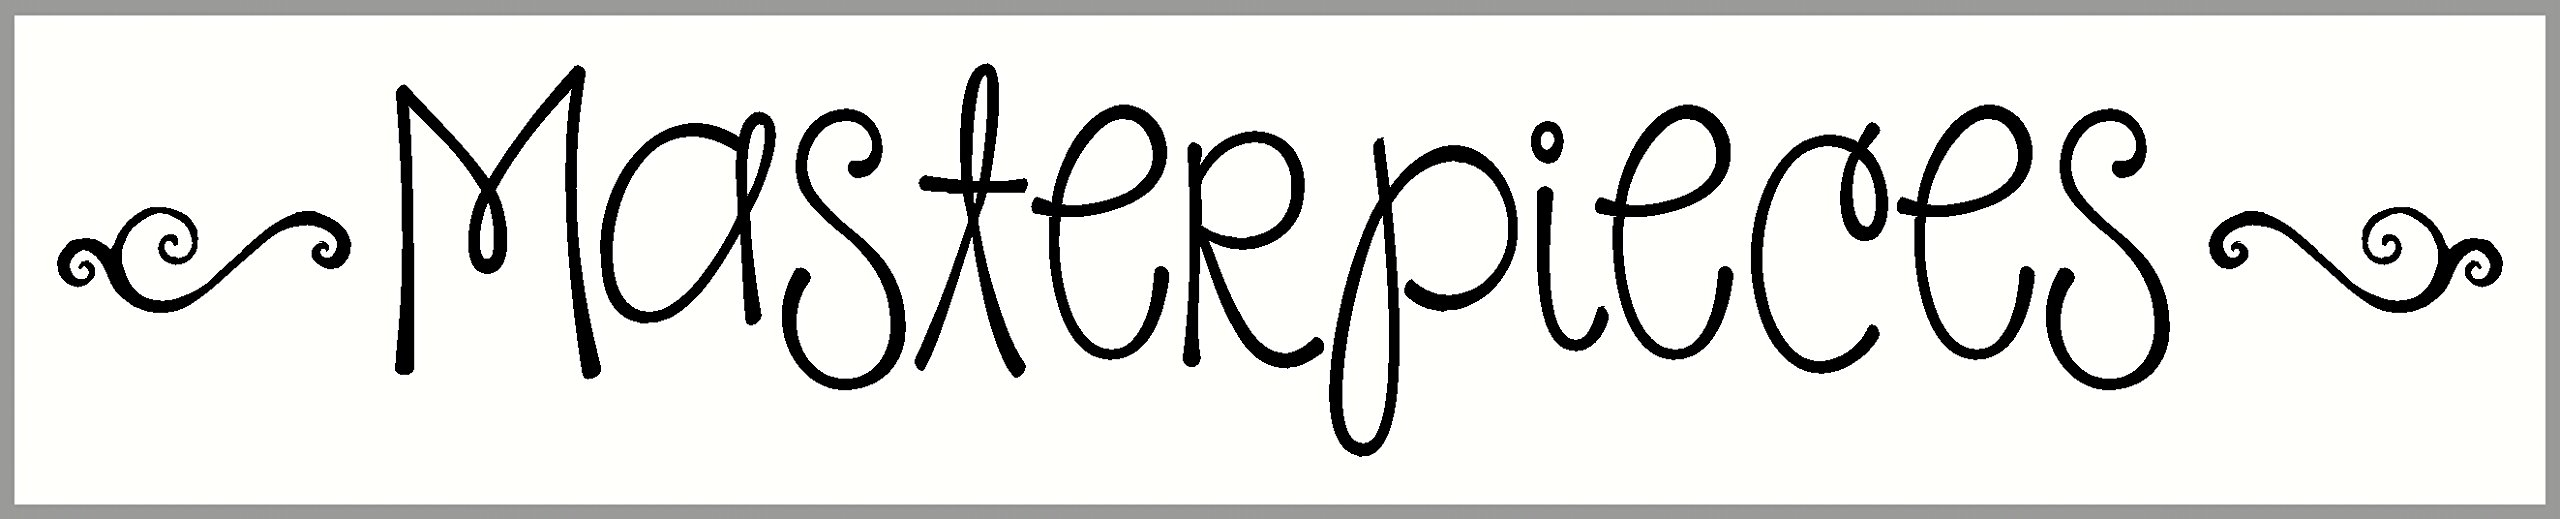 Wall Decor Plus More WDPM3161 Sticker Lettering Masterpieces for Kids Artwork Display area, 36-Inch x 6-Inch, Black by Wall Decor Plus More (Image #2)